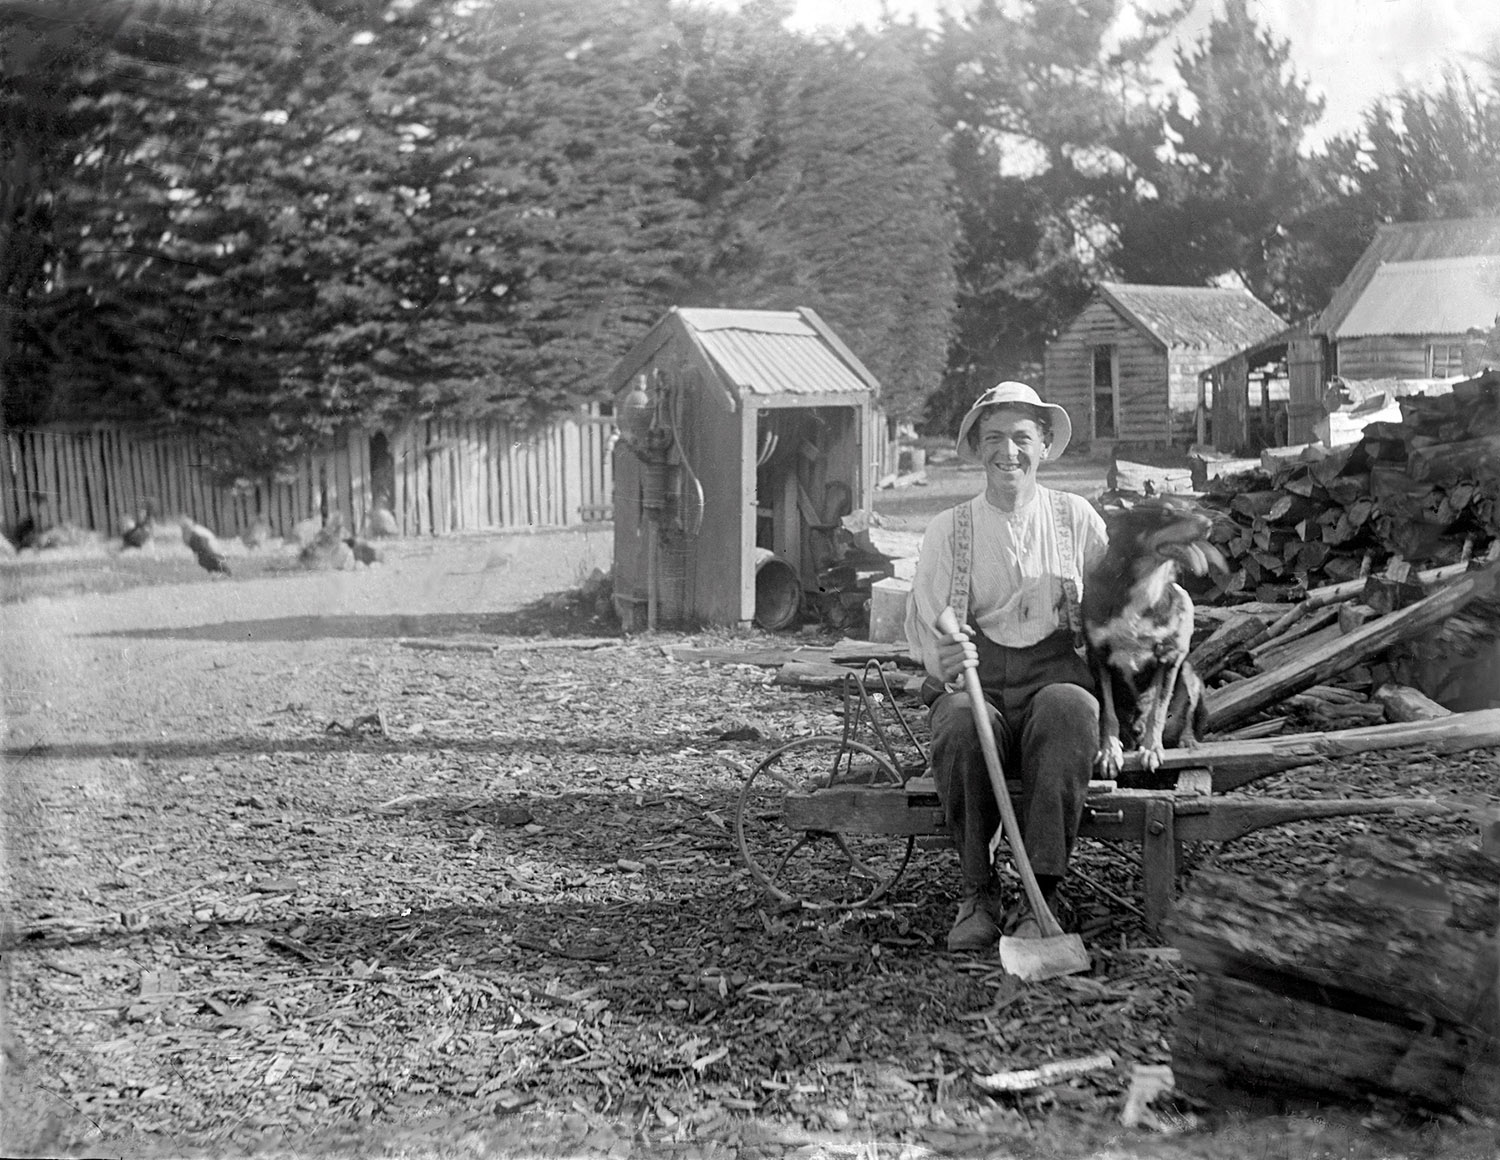 Firewood is sorted. Man posing with dog and axe. New Zealand (possibly in Fielding)  circa 1907-11. Lemuel Lyes Collection.